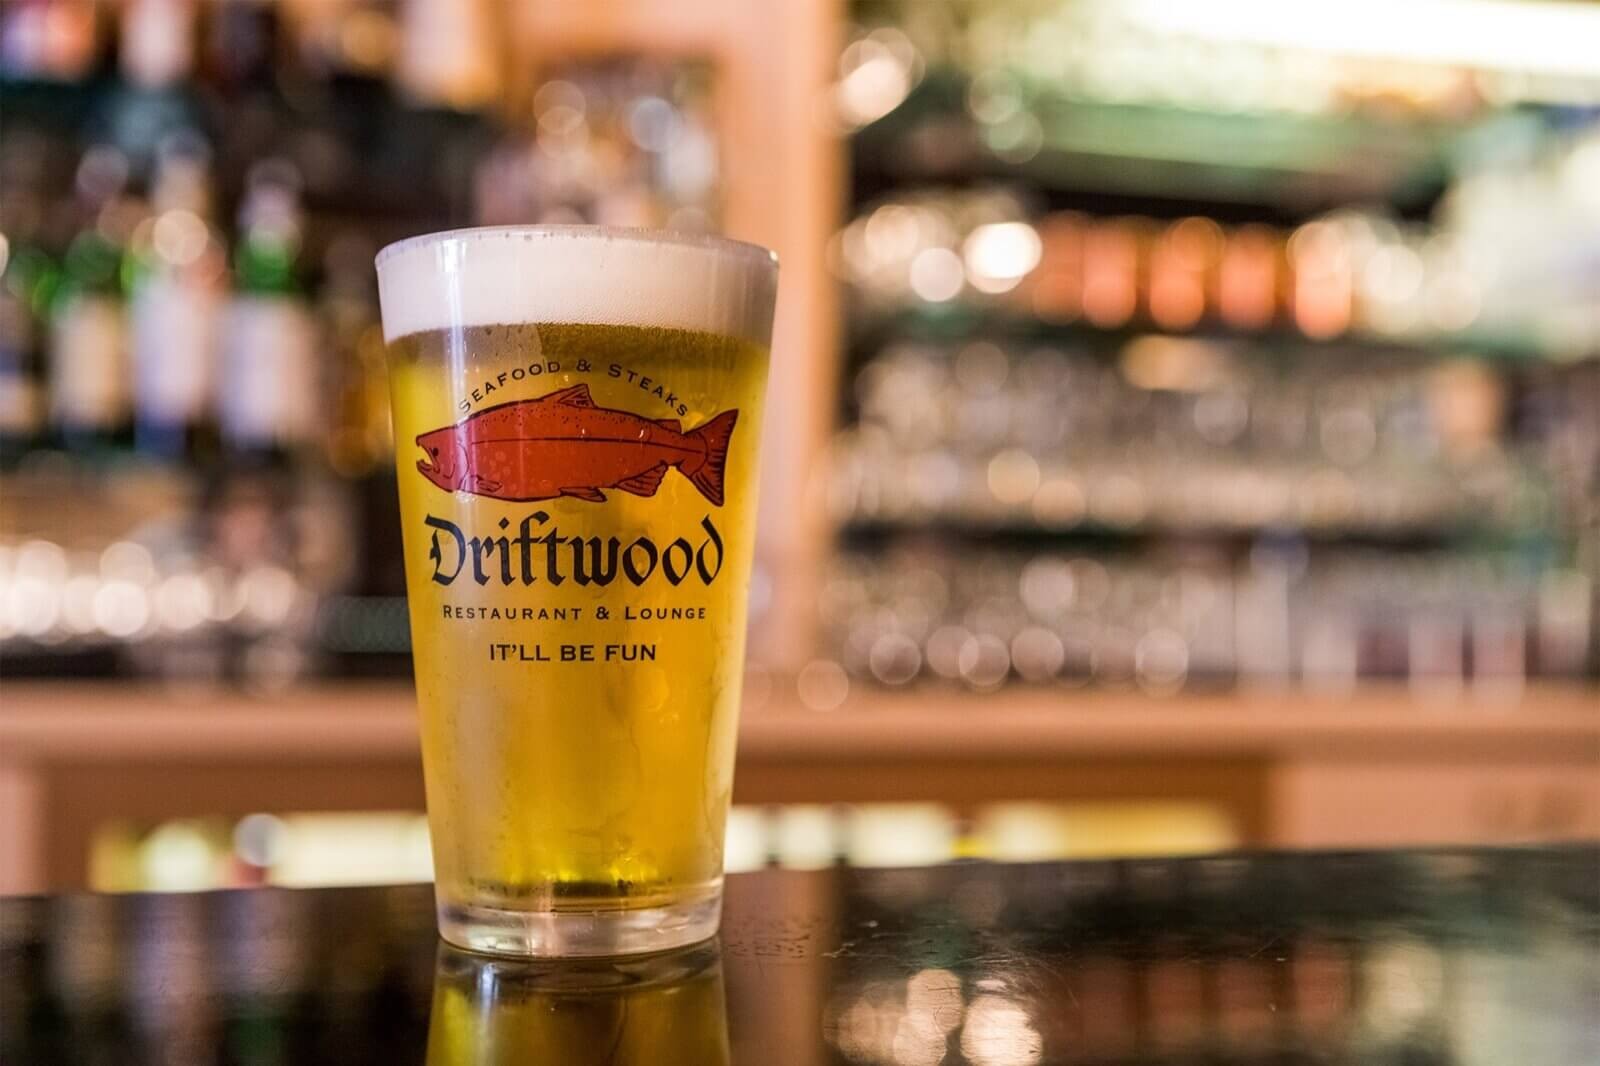 Beer at the driftwood